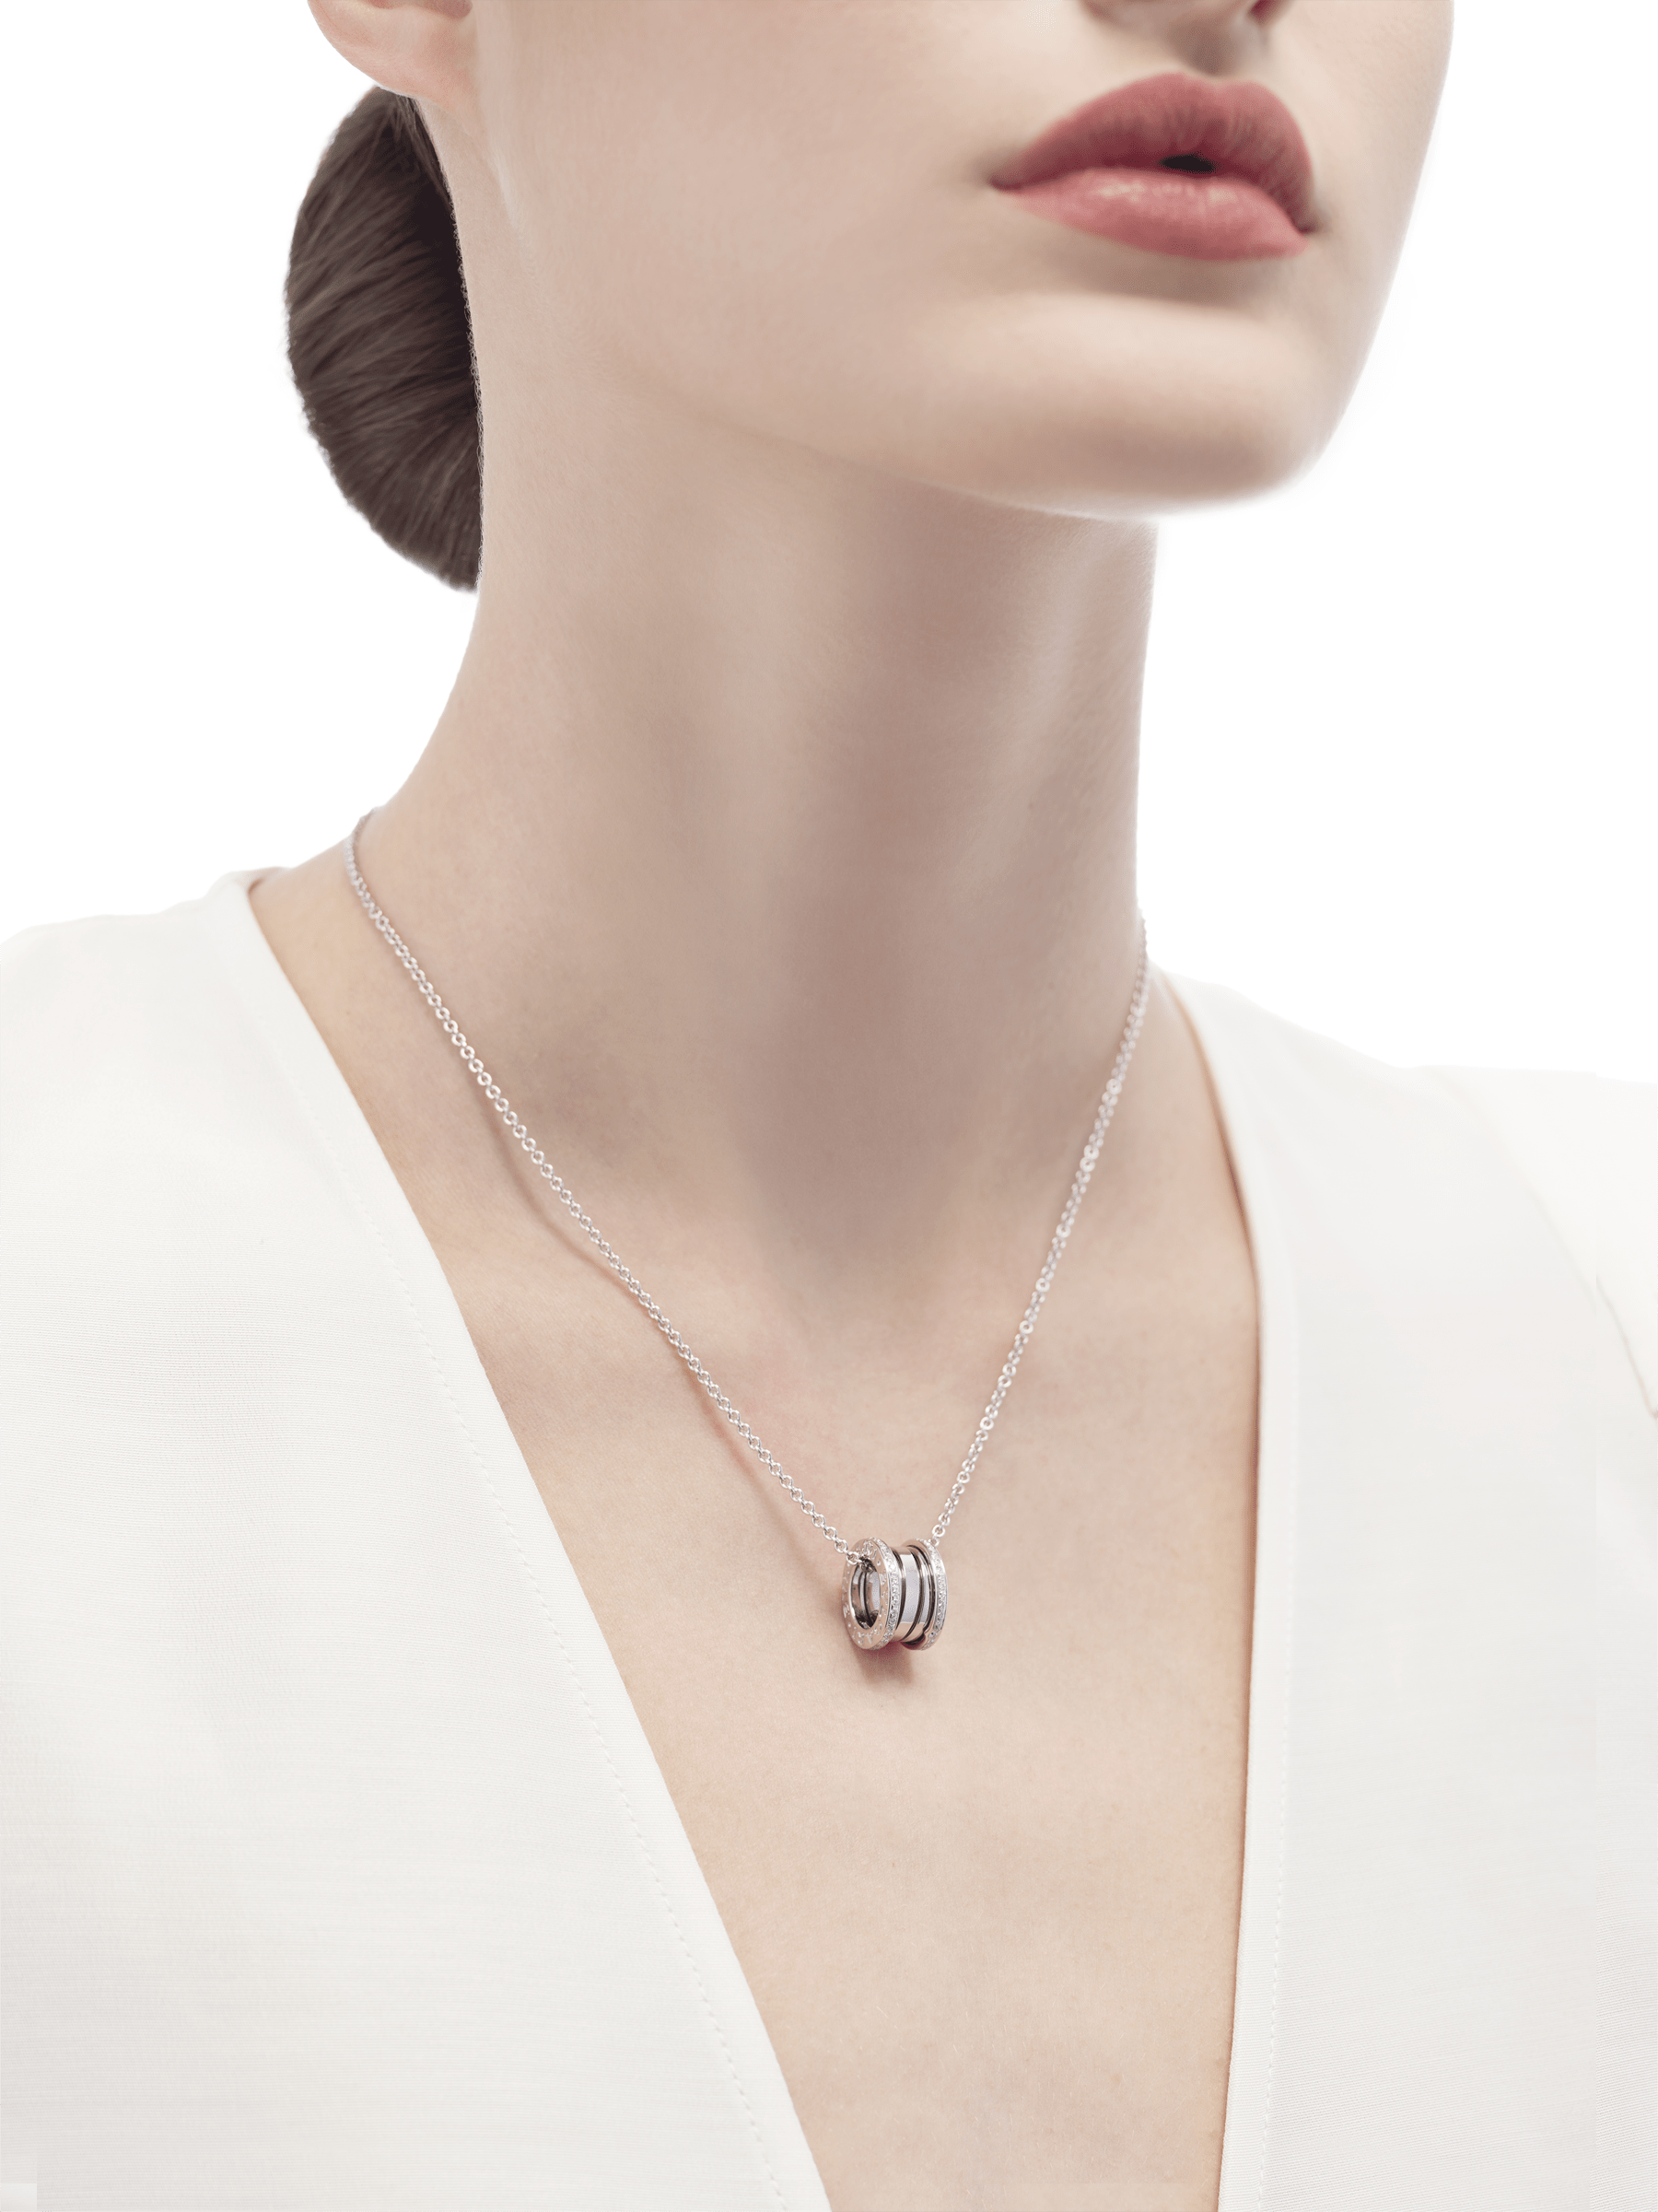 B.zero1 necklace with 18 kt white gold chain and 18 kt white gold round pendant set with pavé diamonds on the edges. 350054 image 4